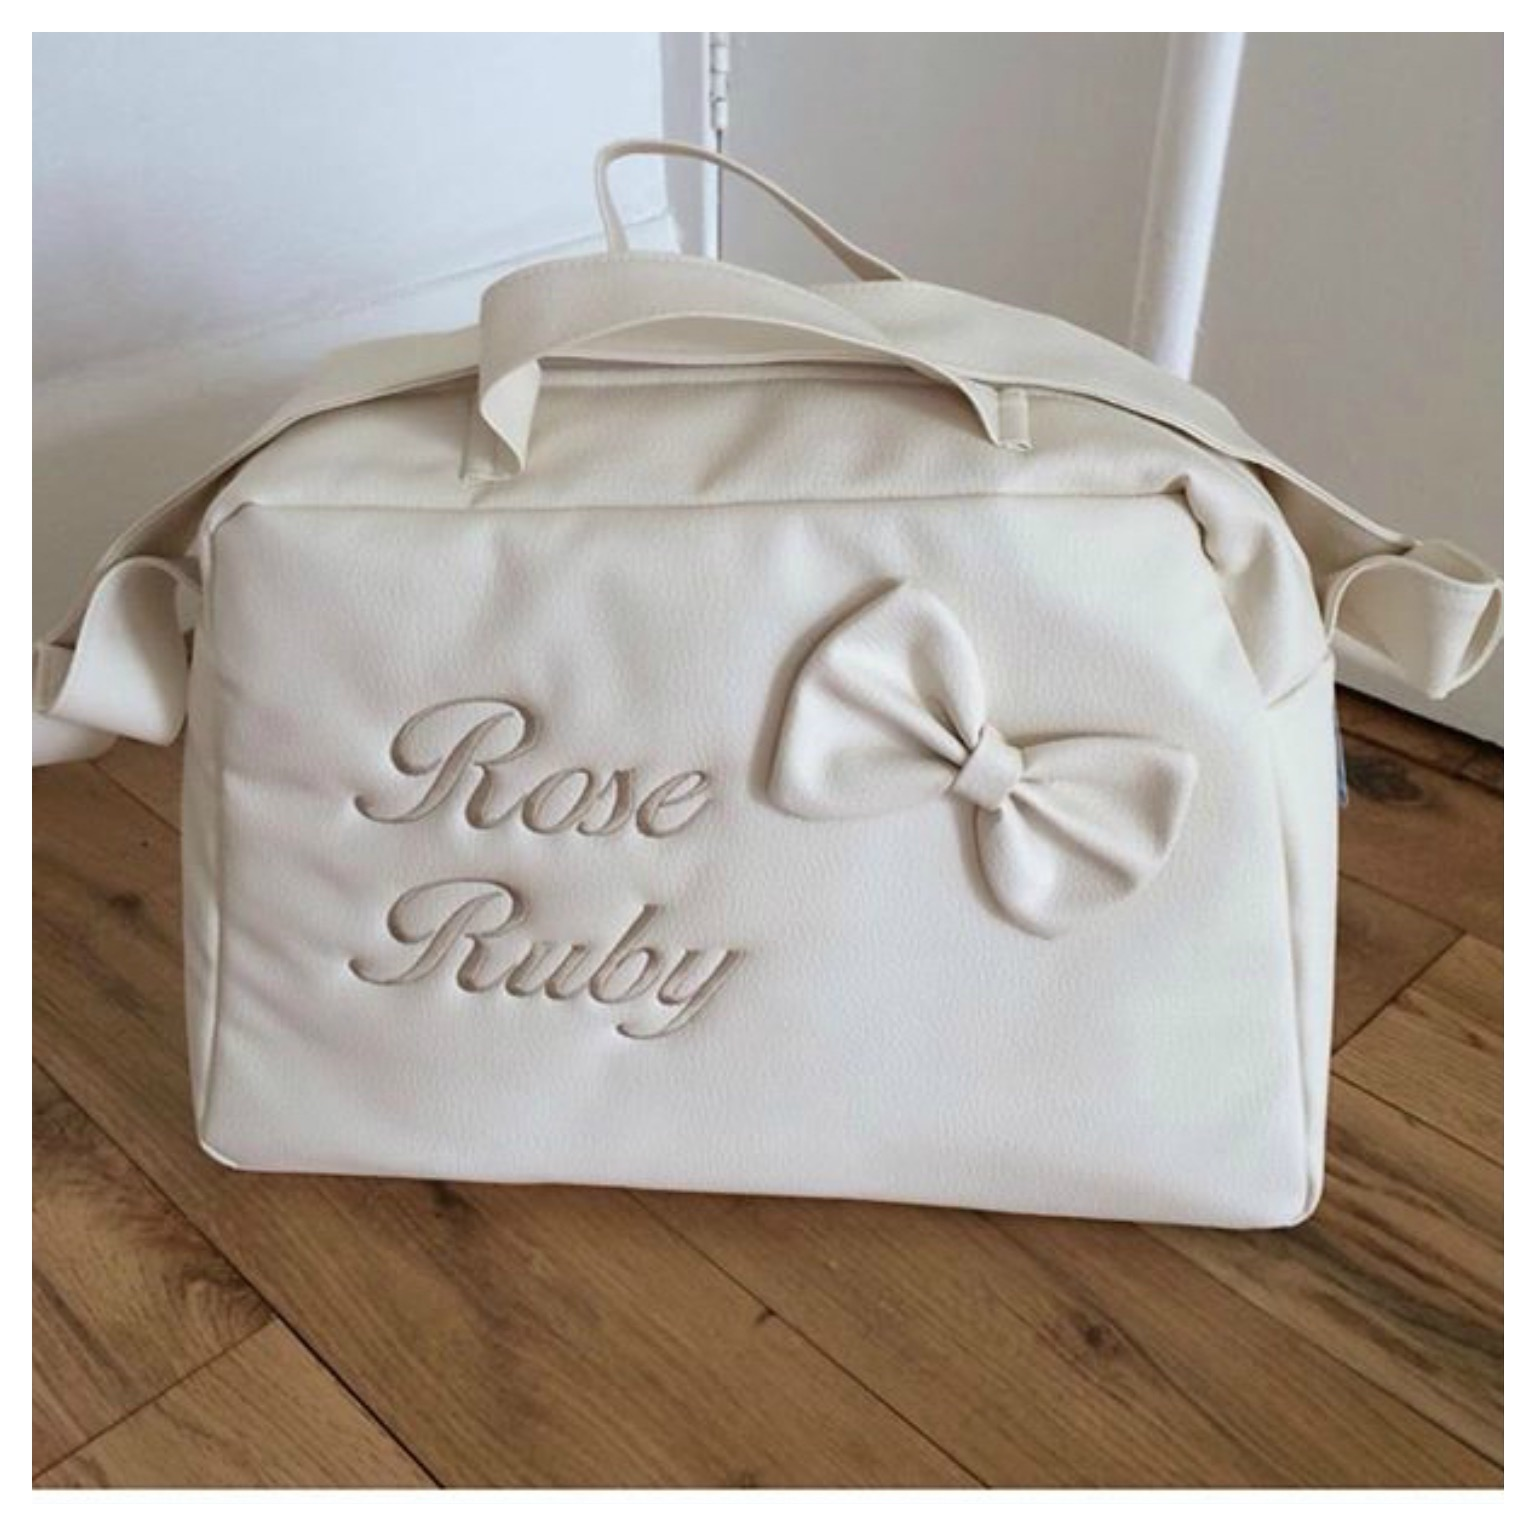 6123b7693c43a Changing Bag Personalised – rubysbowtique